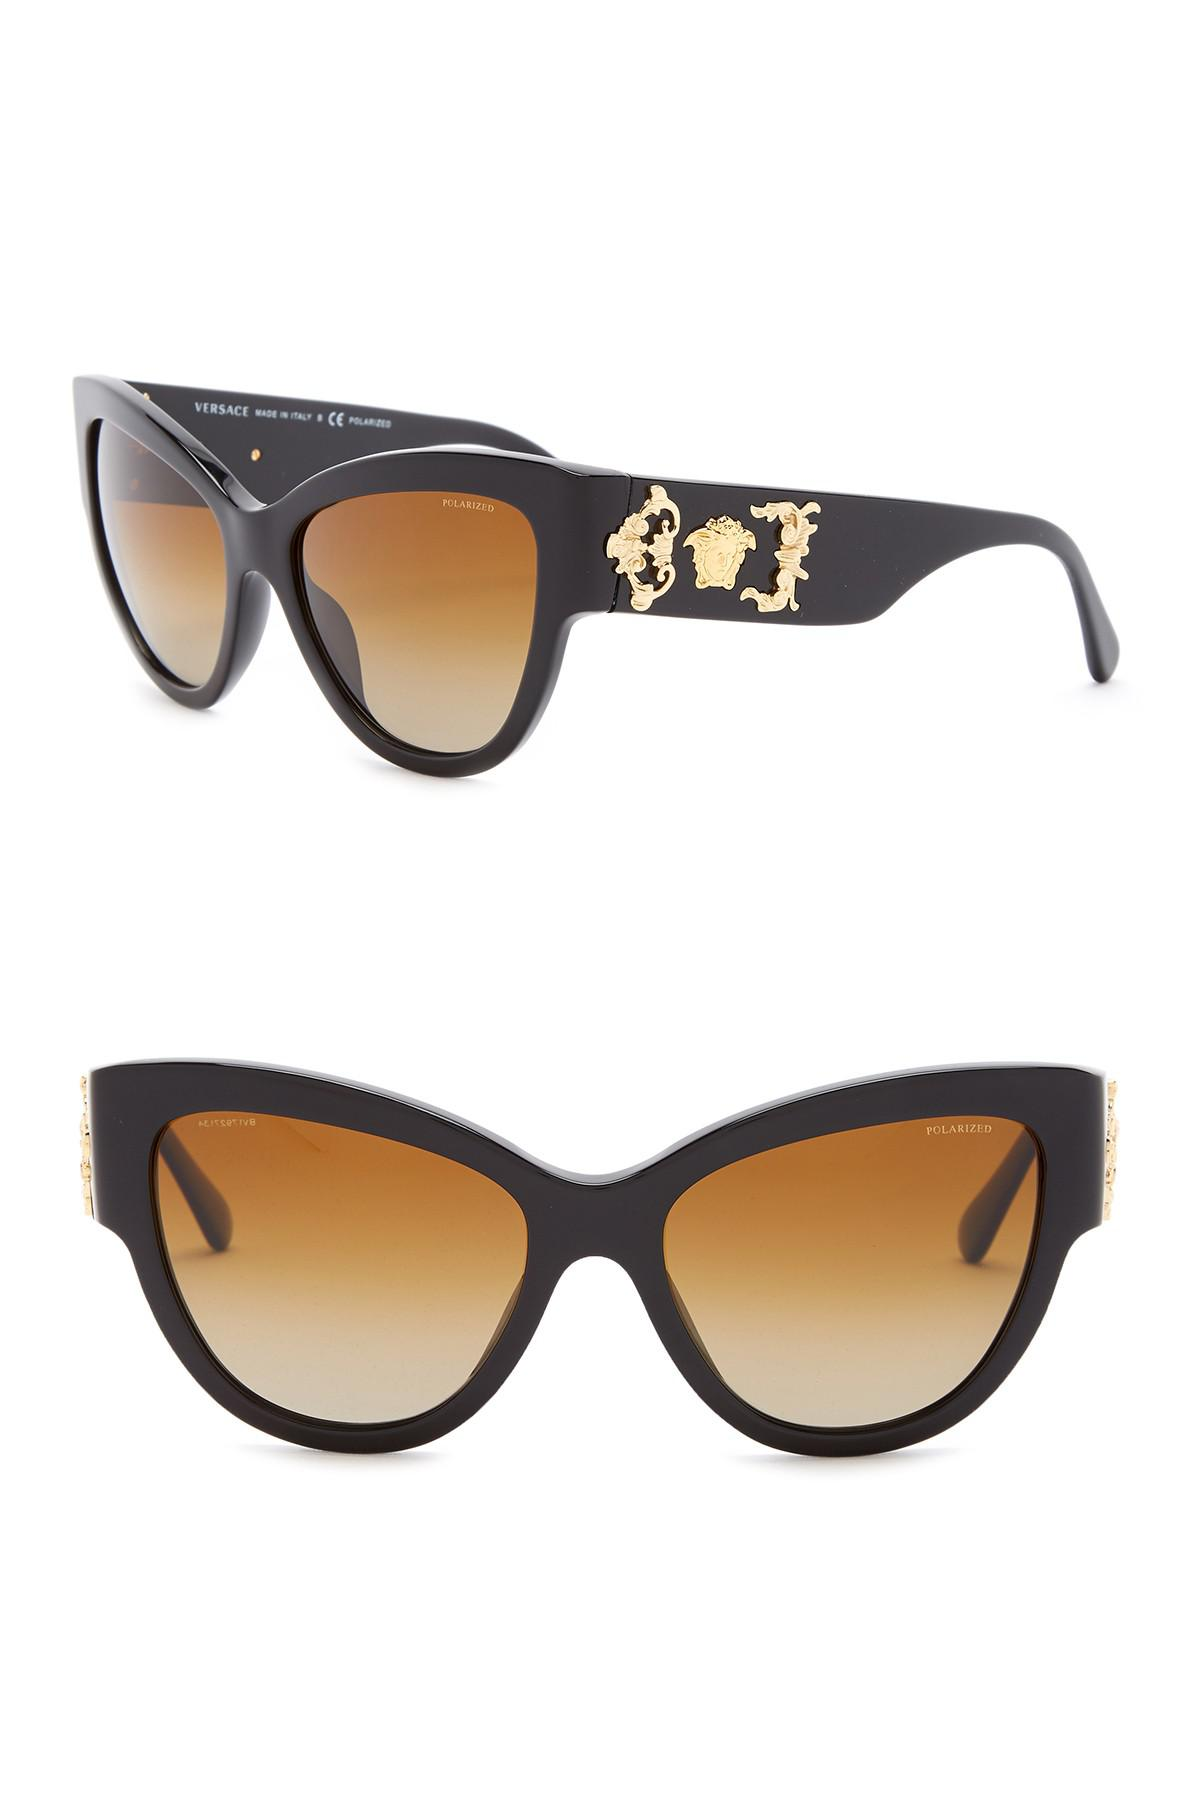 c36ab7bd2cb7 Lyst - Versace Rock Icons Medusa 55mm Sunglasses in Black